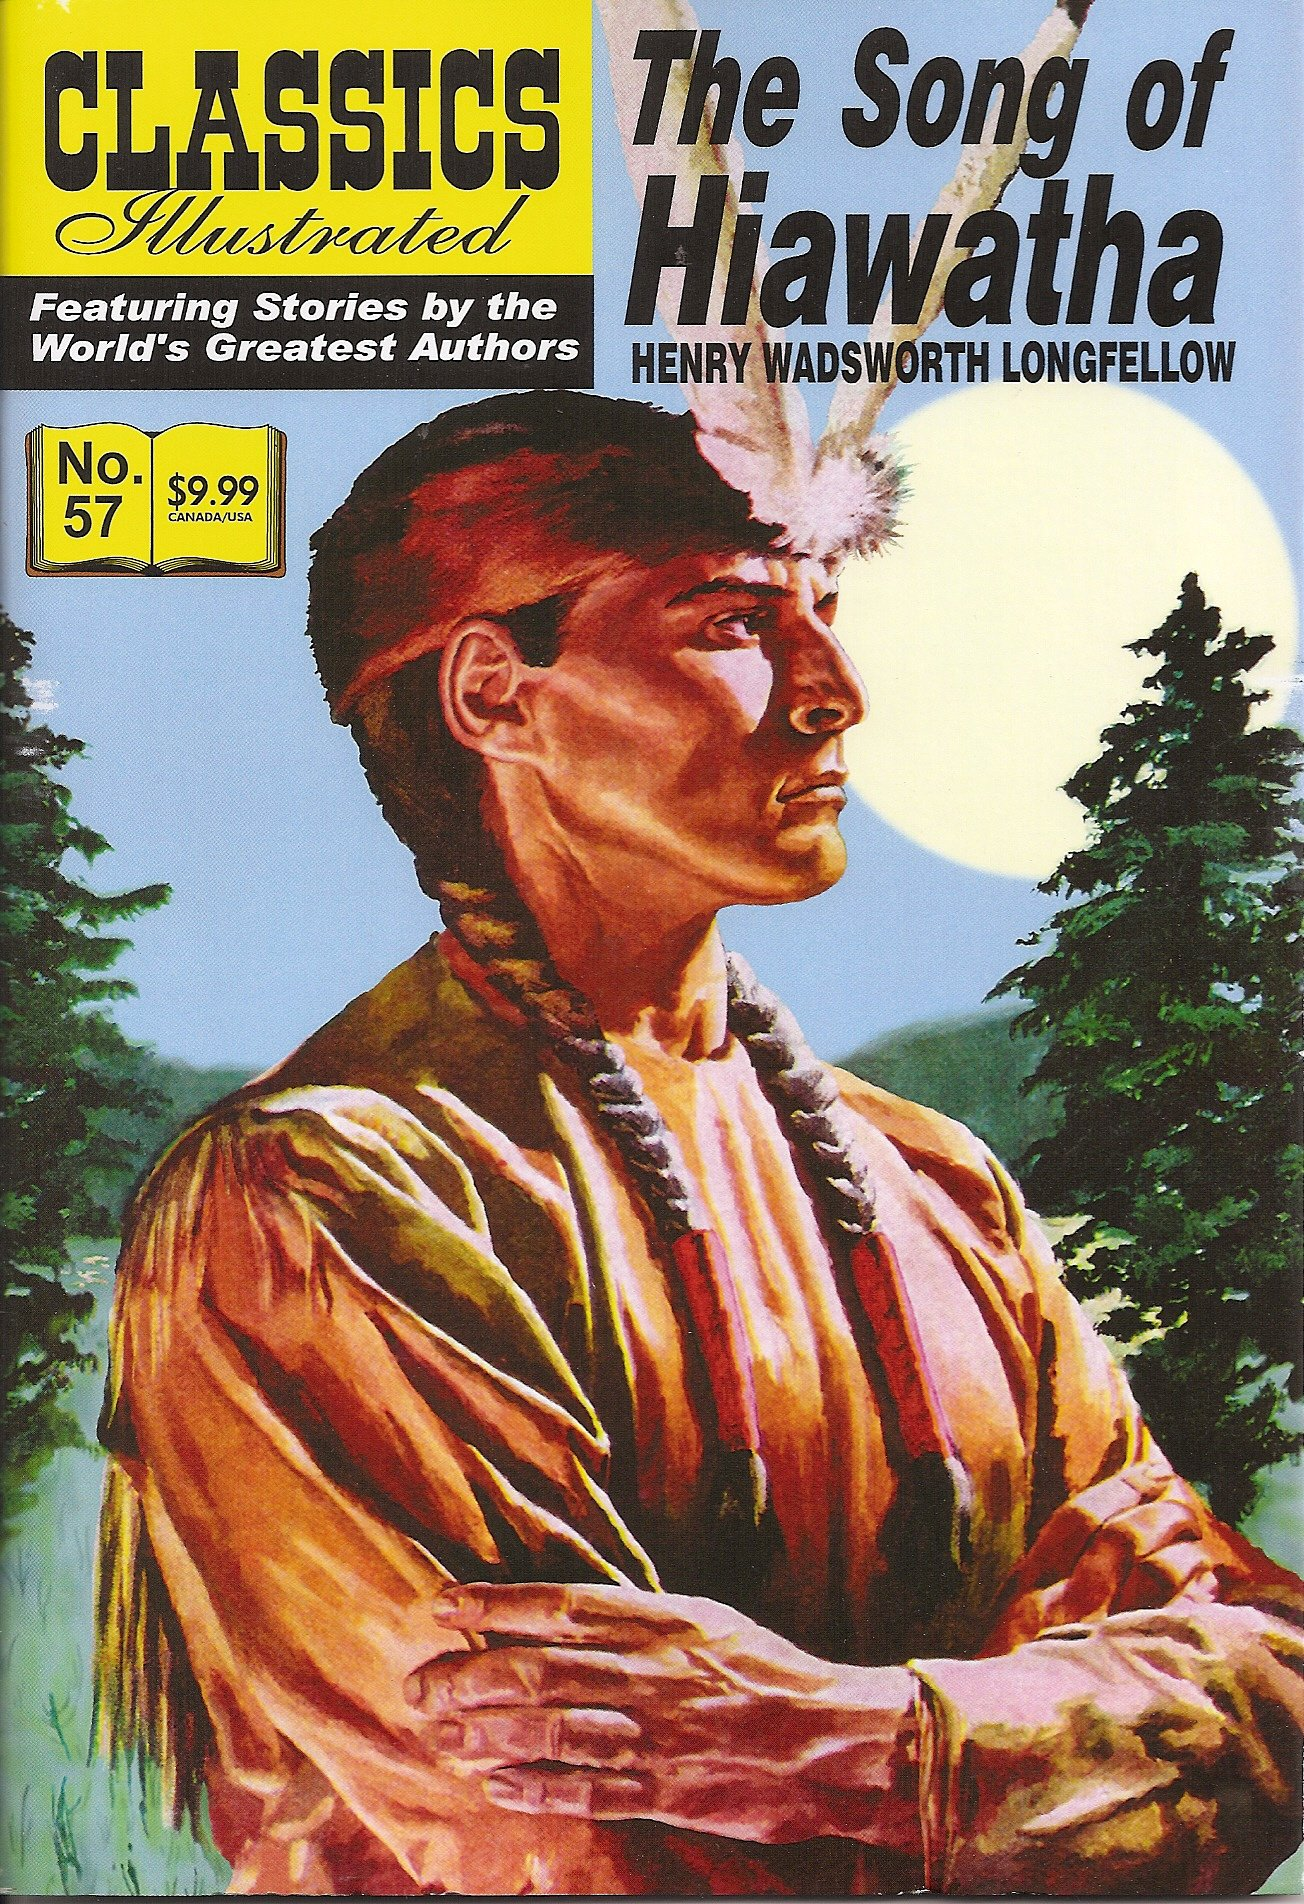 the song of hiawatha classics illustrated 57 henry wadsworth the song of hiawatha classics illustrated 57 henry wadsworth longfellow william b jones jr com books